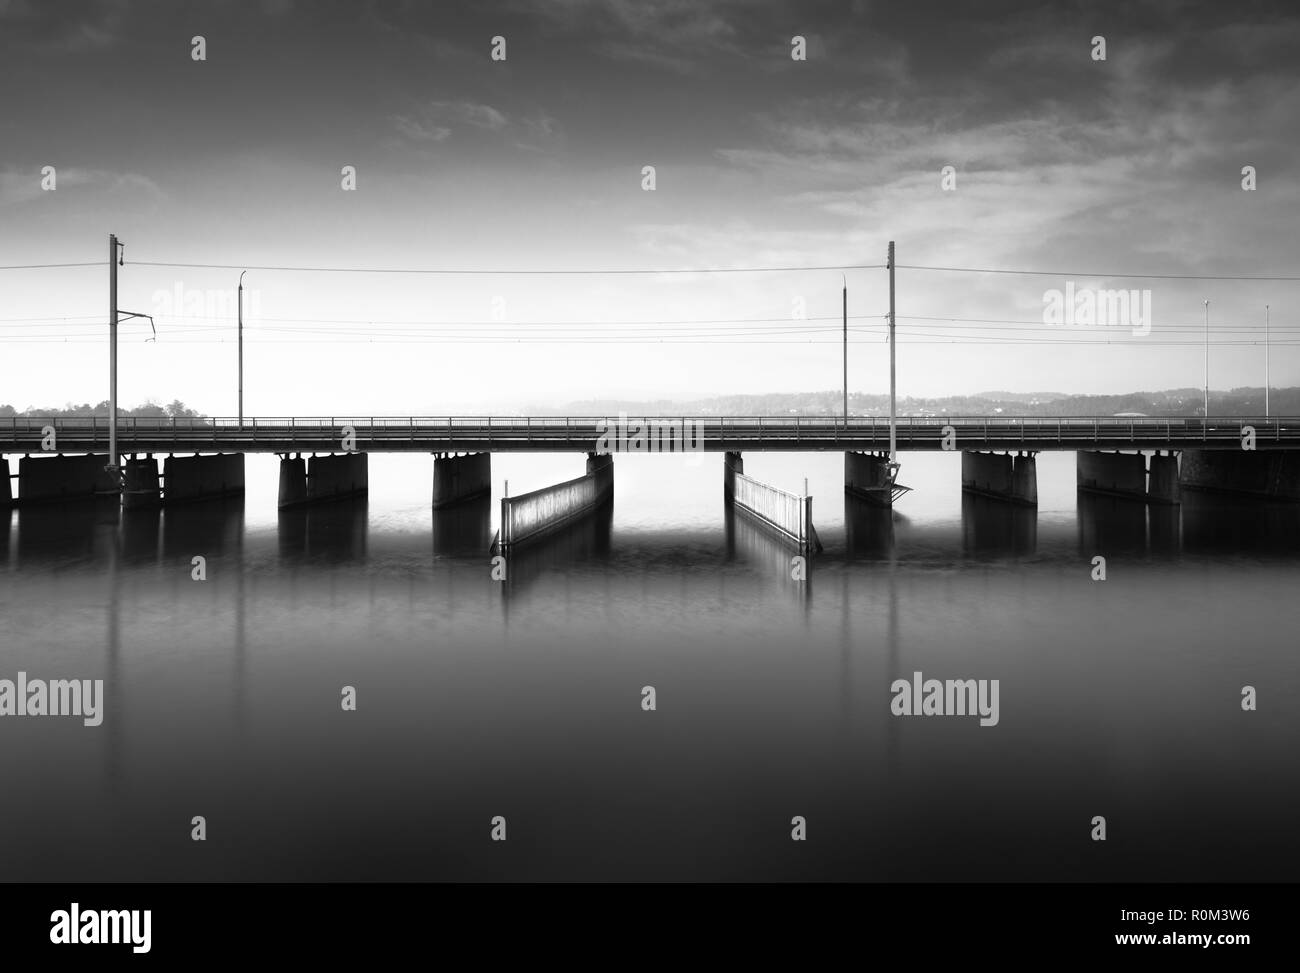 concrete bridge over water with a train line and road running parallel and a boat and ship passageway below - Stock Image